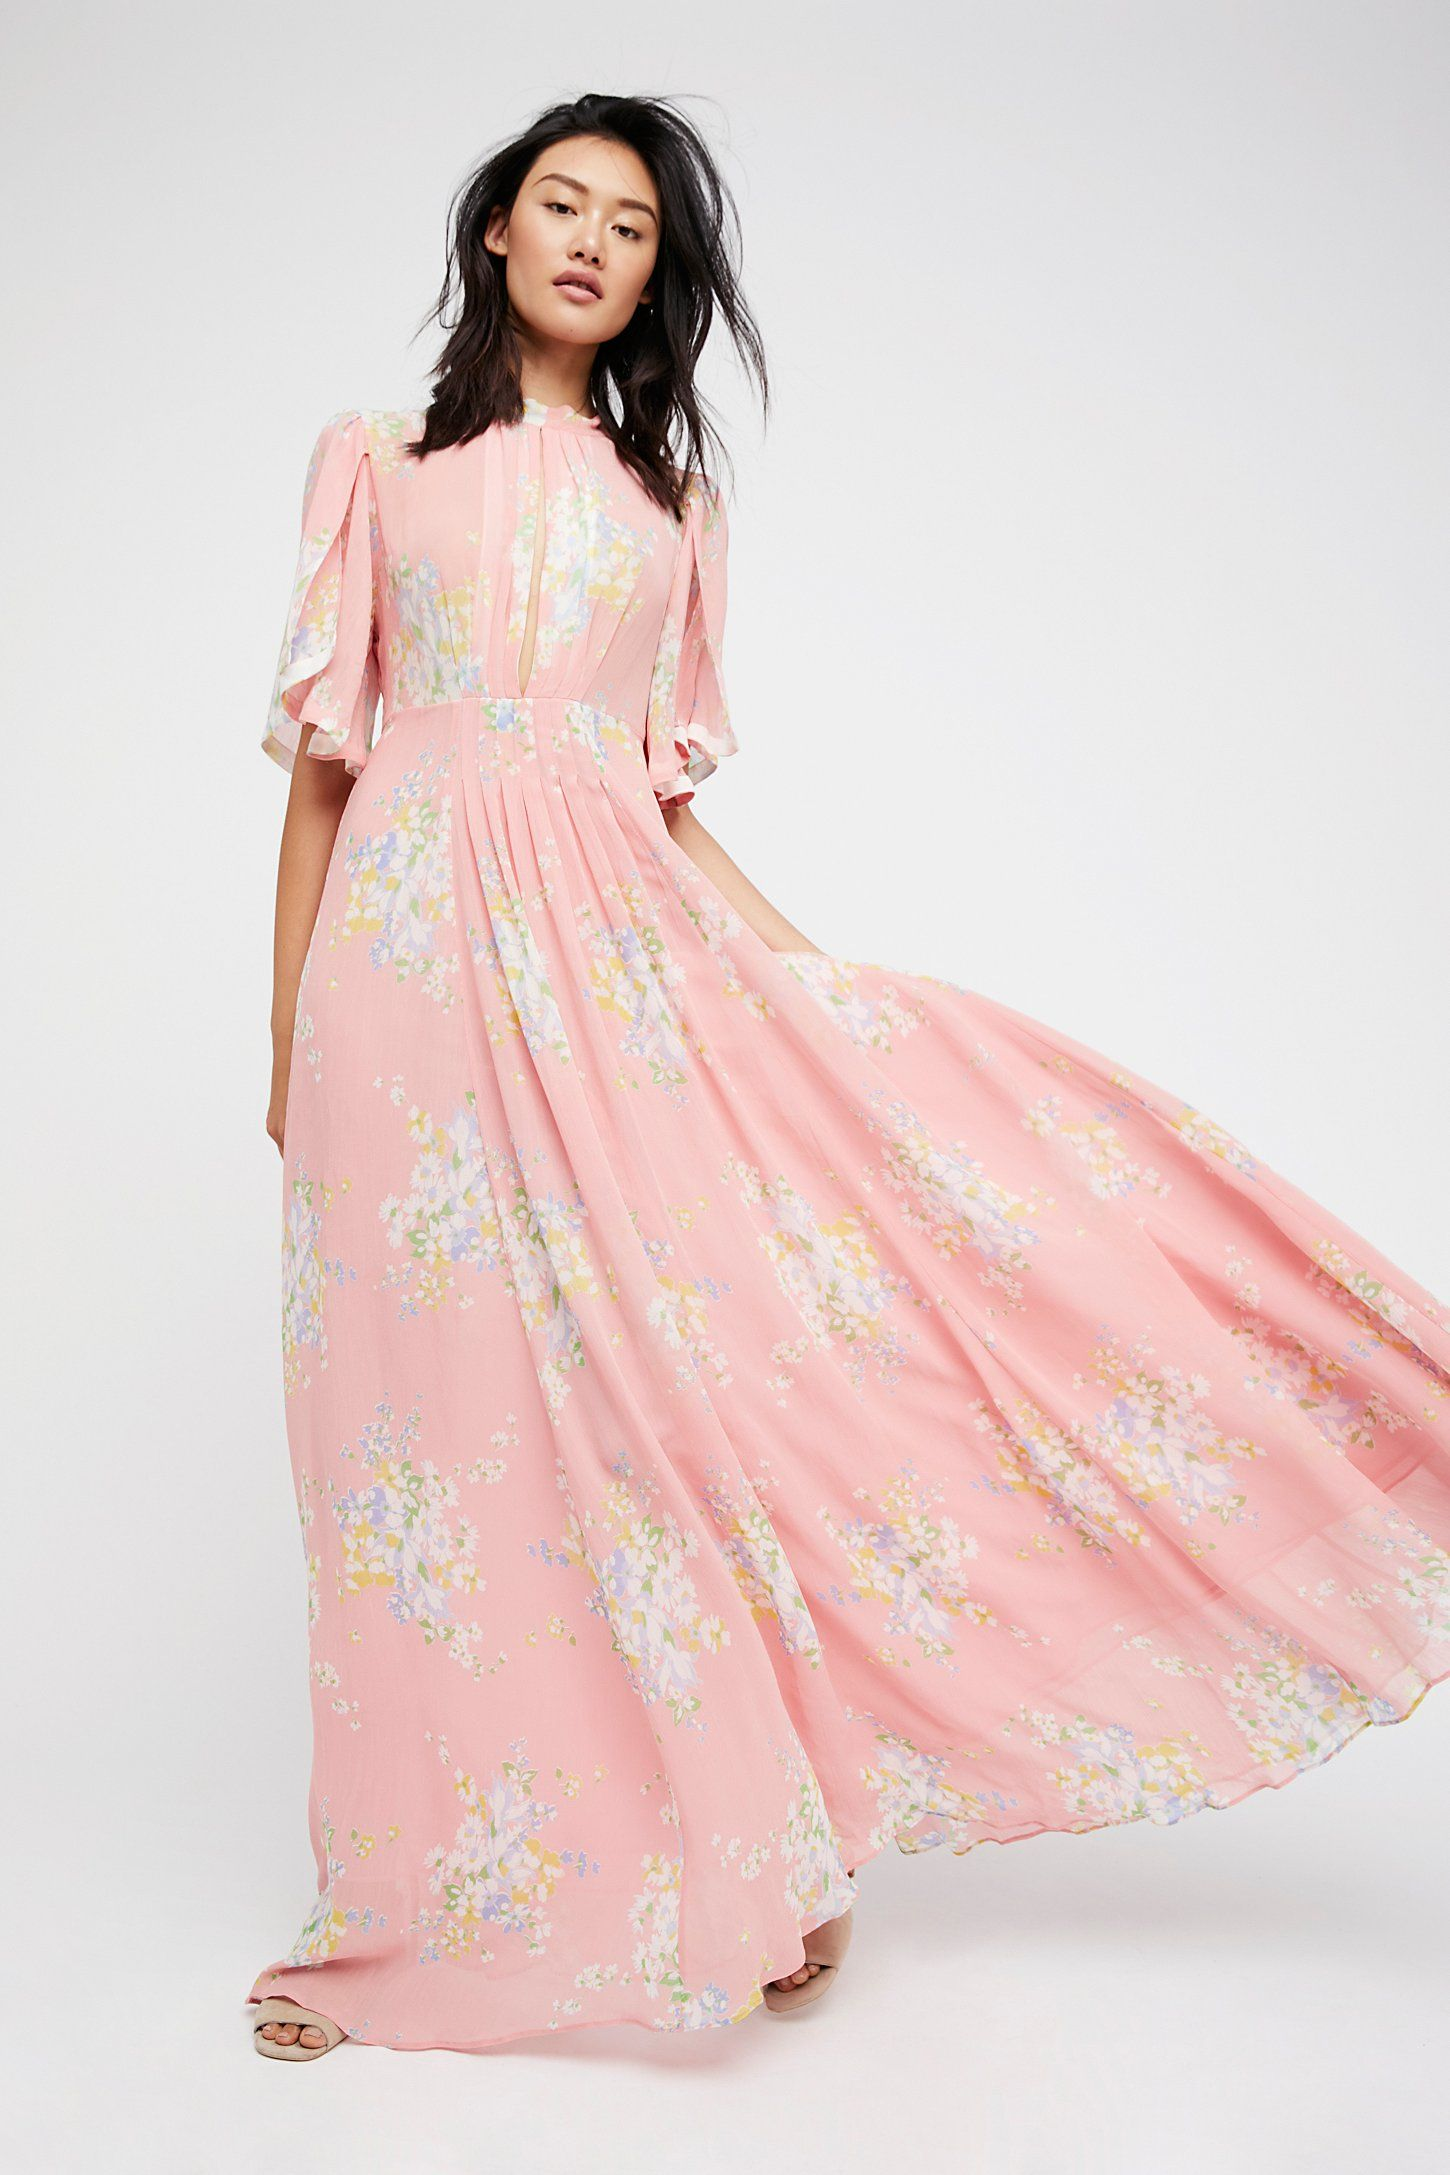 Slide View 1: Wildflowers Maxi Dress | WANT | Pinterest